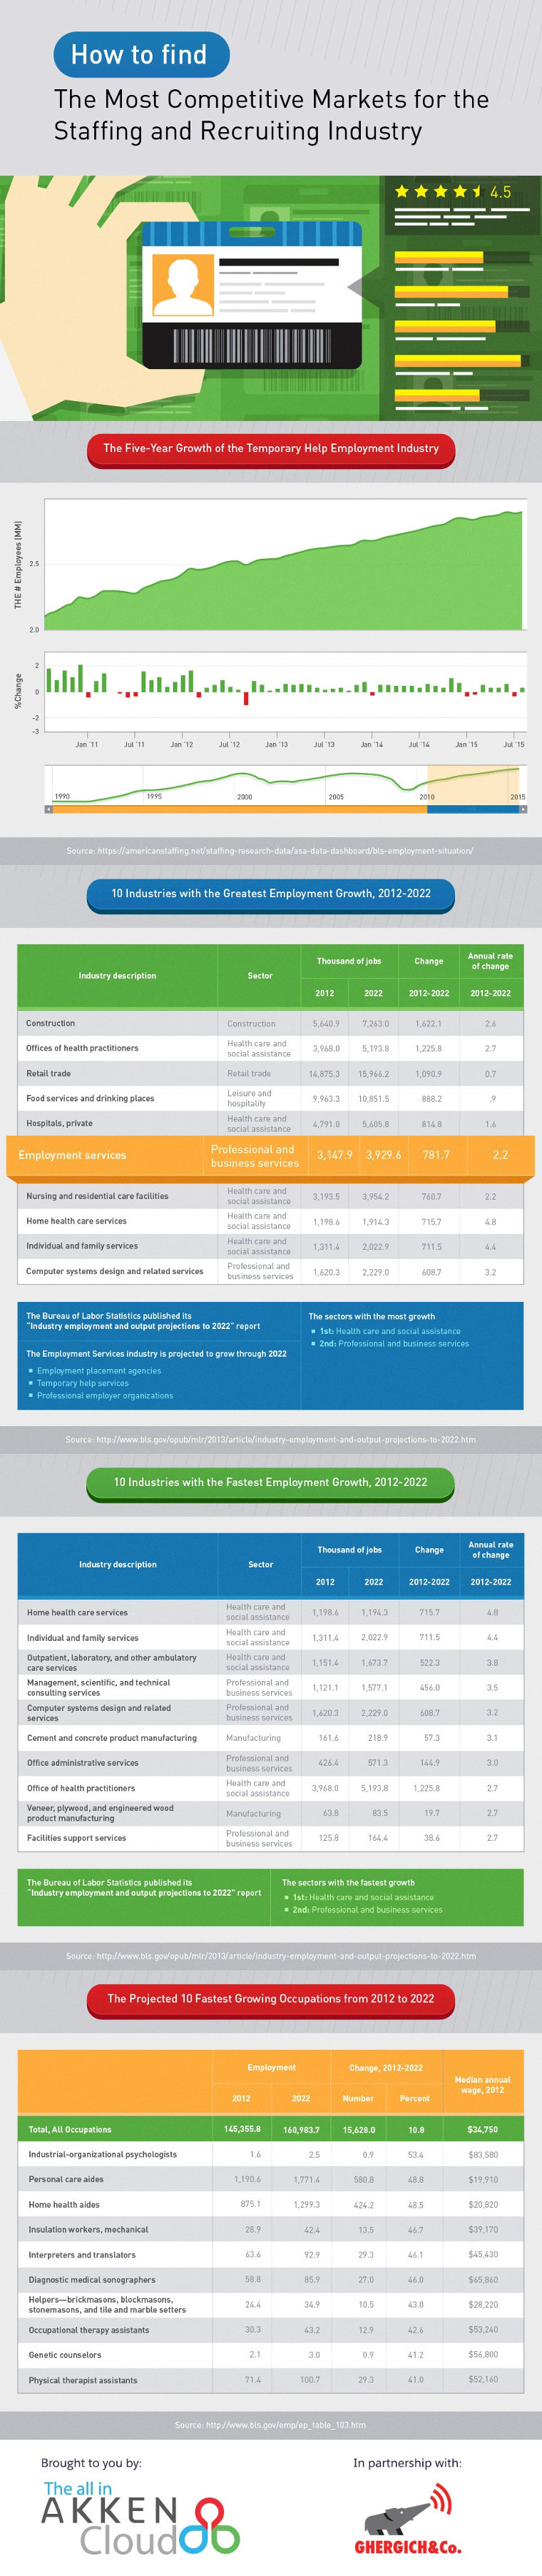 Finding competitive markets in staffing and recruiting industry - infographic